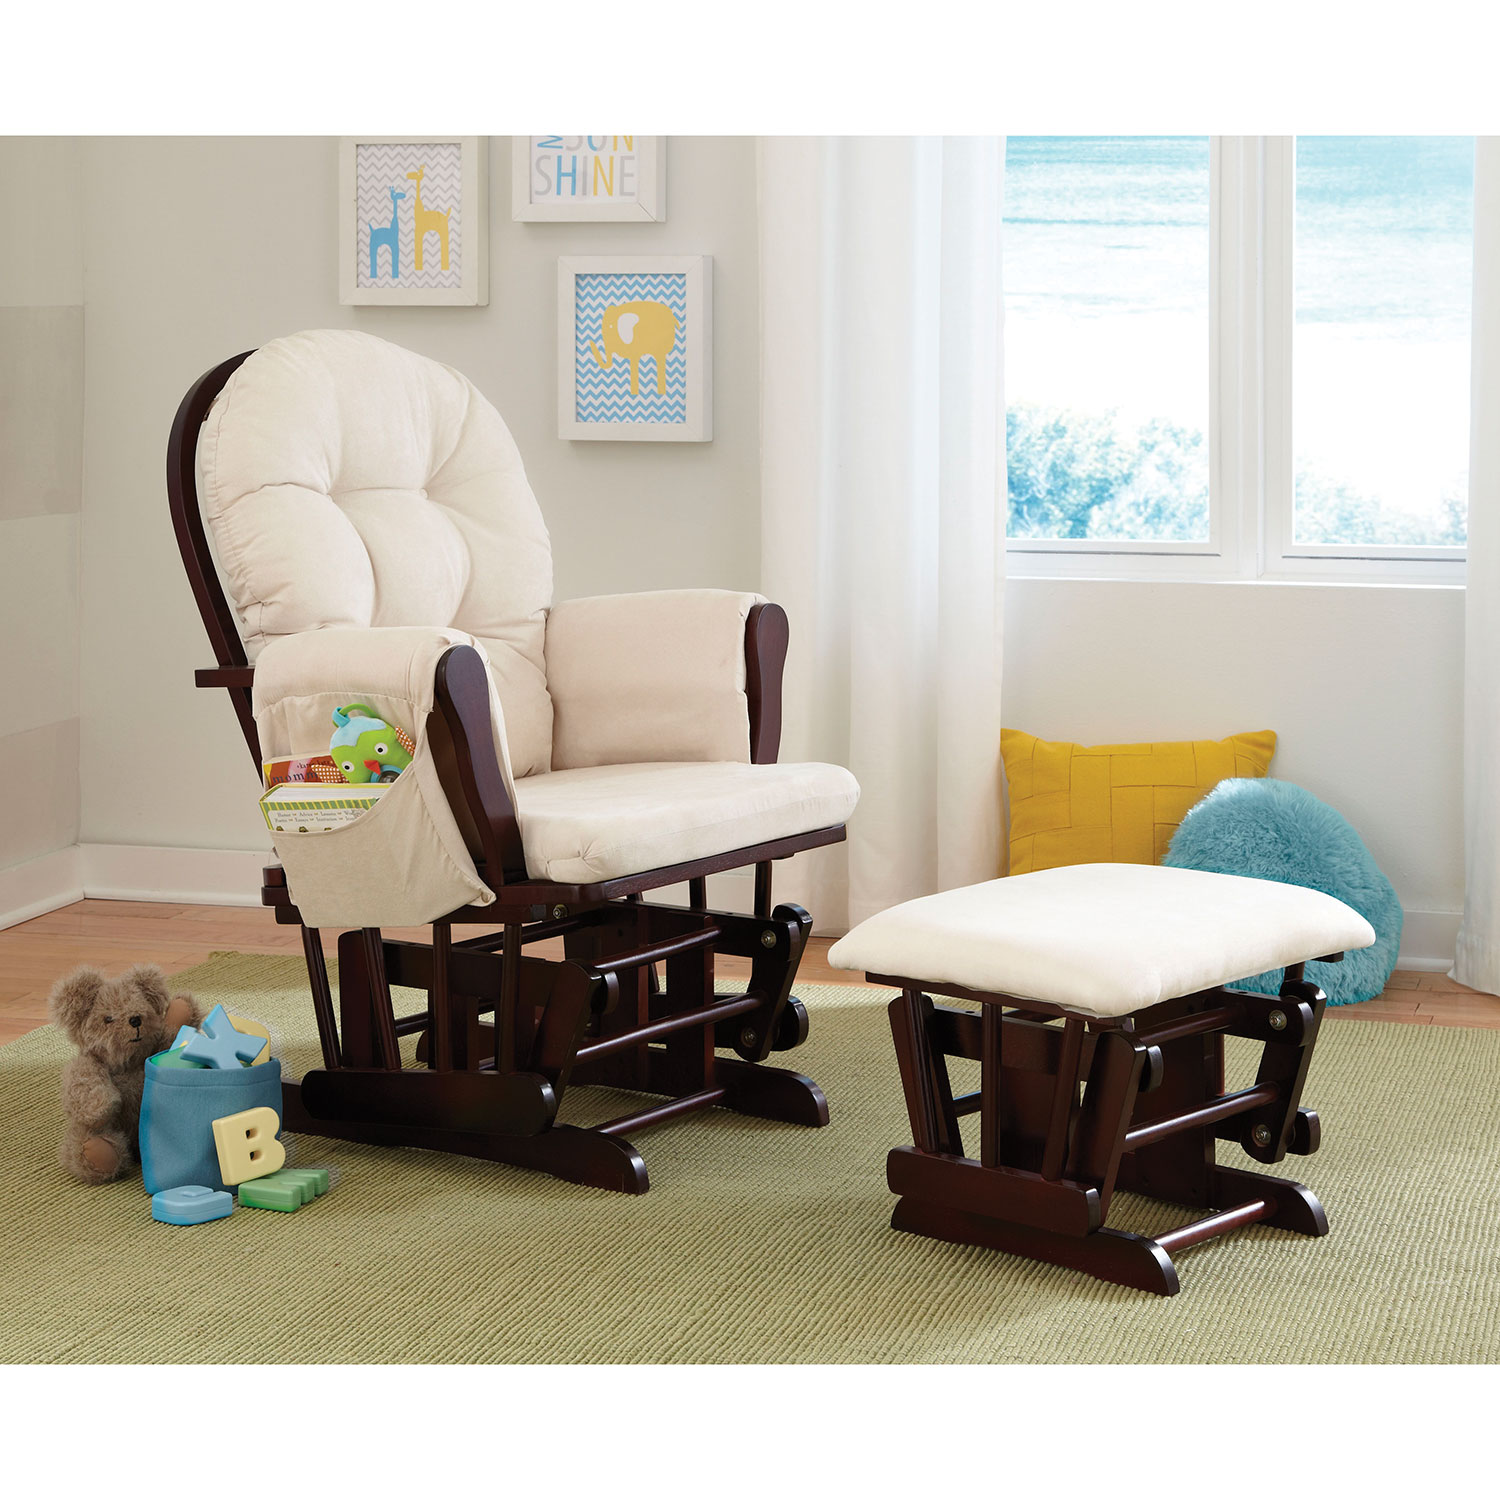 All products baby amp kids nursery furniture rocking chairs - Stork Craft Hoop Glider And Ottoman Set Espresso Beige 06550 419 Gliders Best Buy Canada